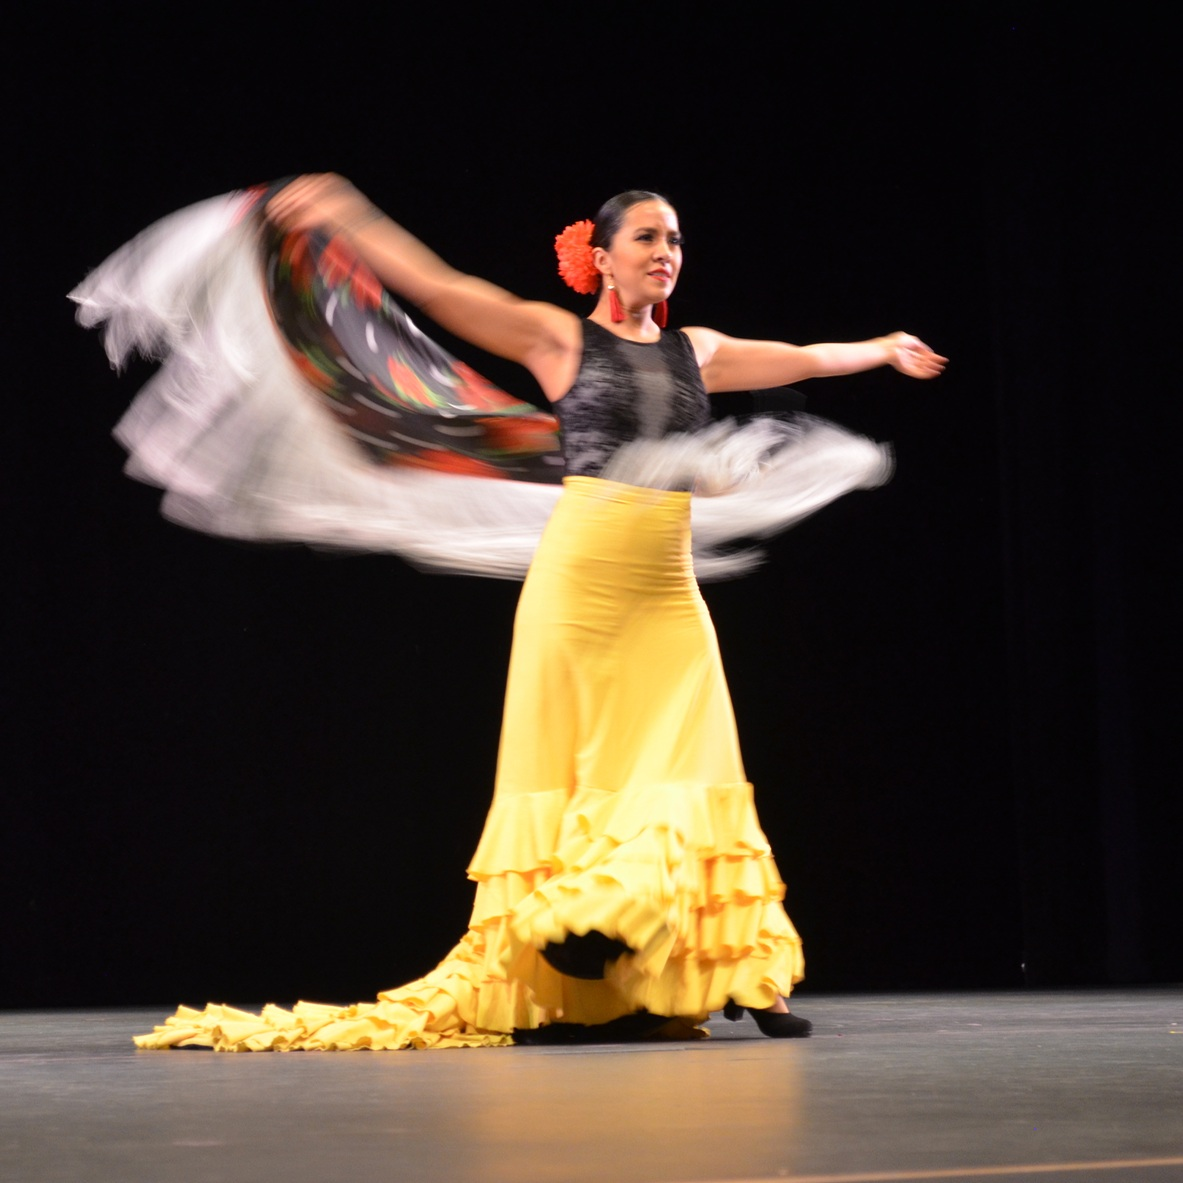 WINTER 2017 RECITAL  Semilla Flamenca presented all what they learned from Sept-Jan. This happened at the Redmond Performing Arts Center, and our special guest was Diana Hernandez Leon.